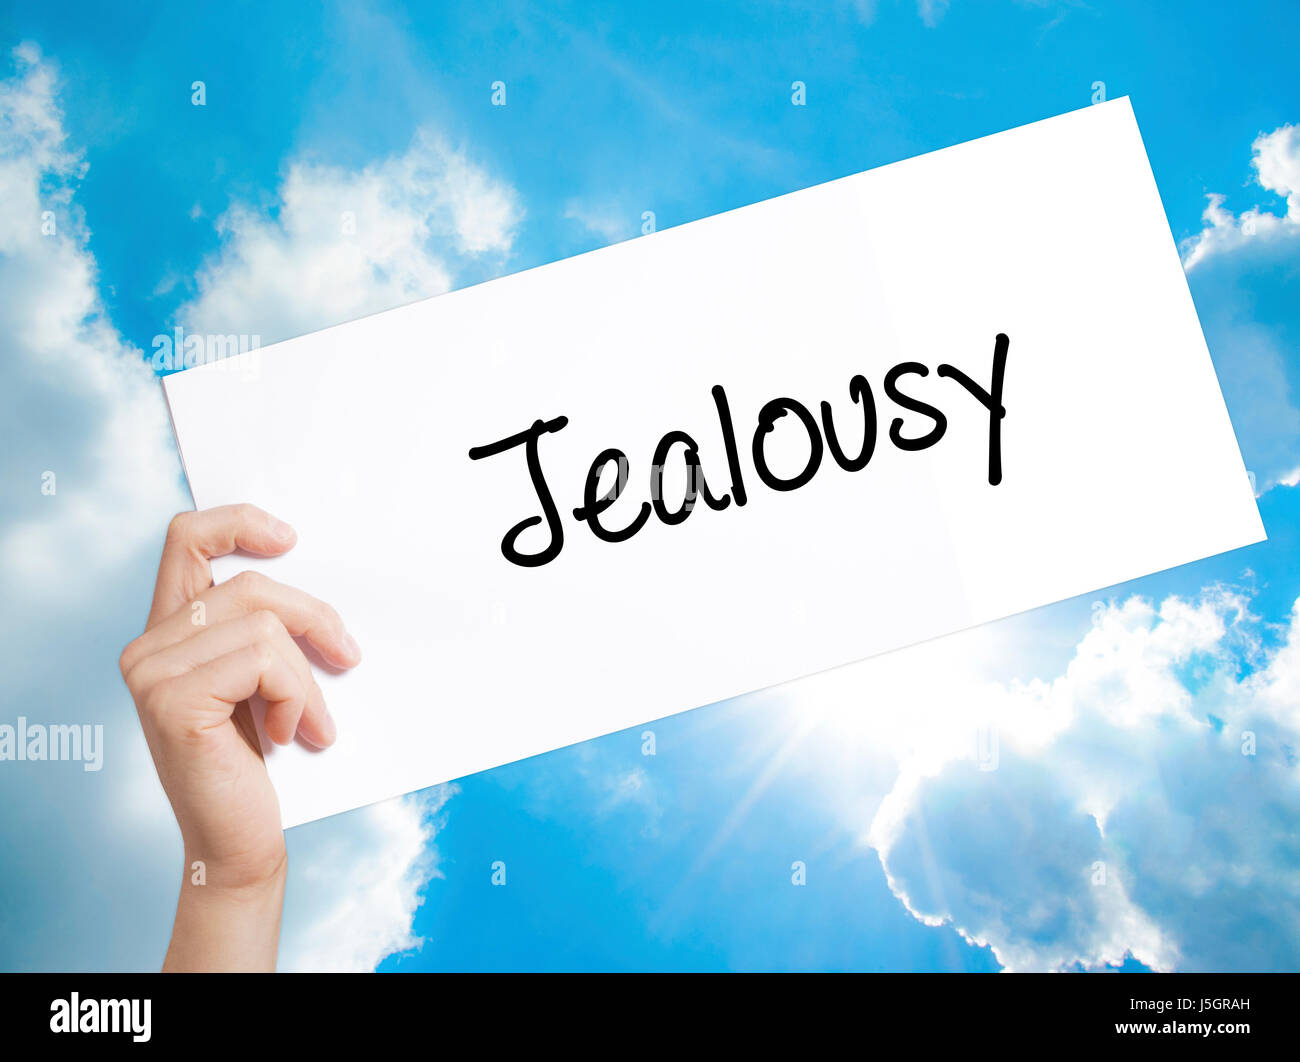 Jealousy Sign on white paper. Man Hand Holding Paper with text. Isolated on sky background.   Business concept. - Stock Image